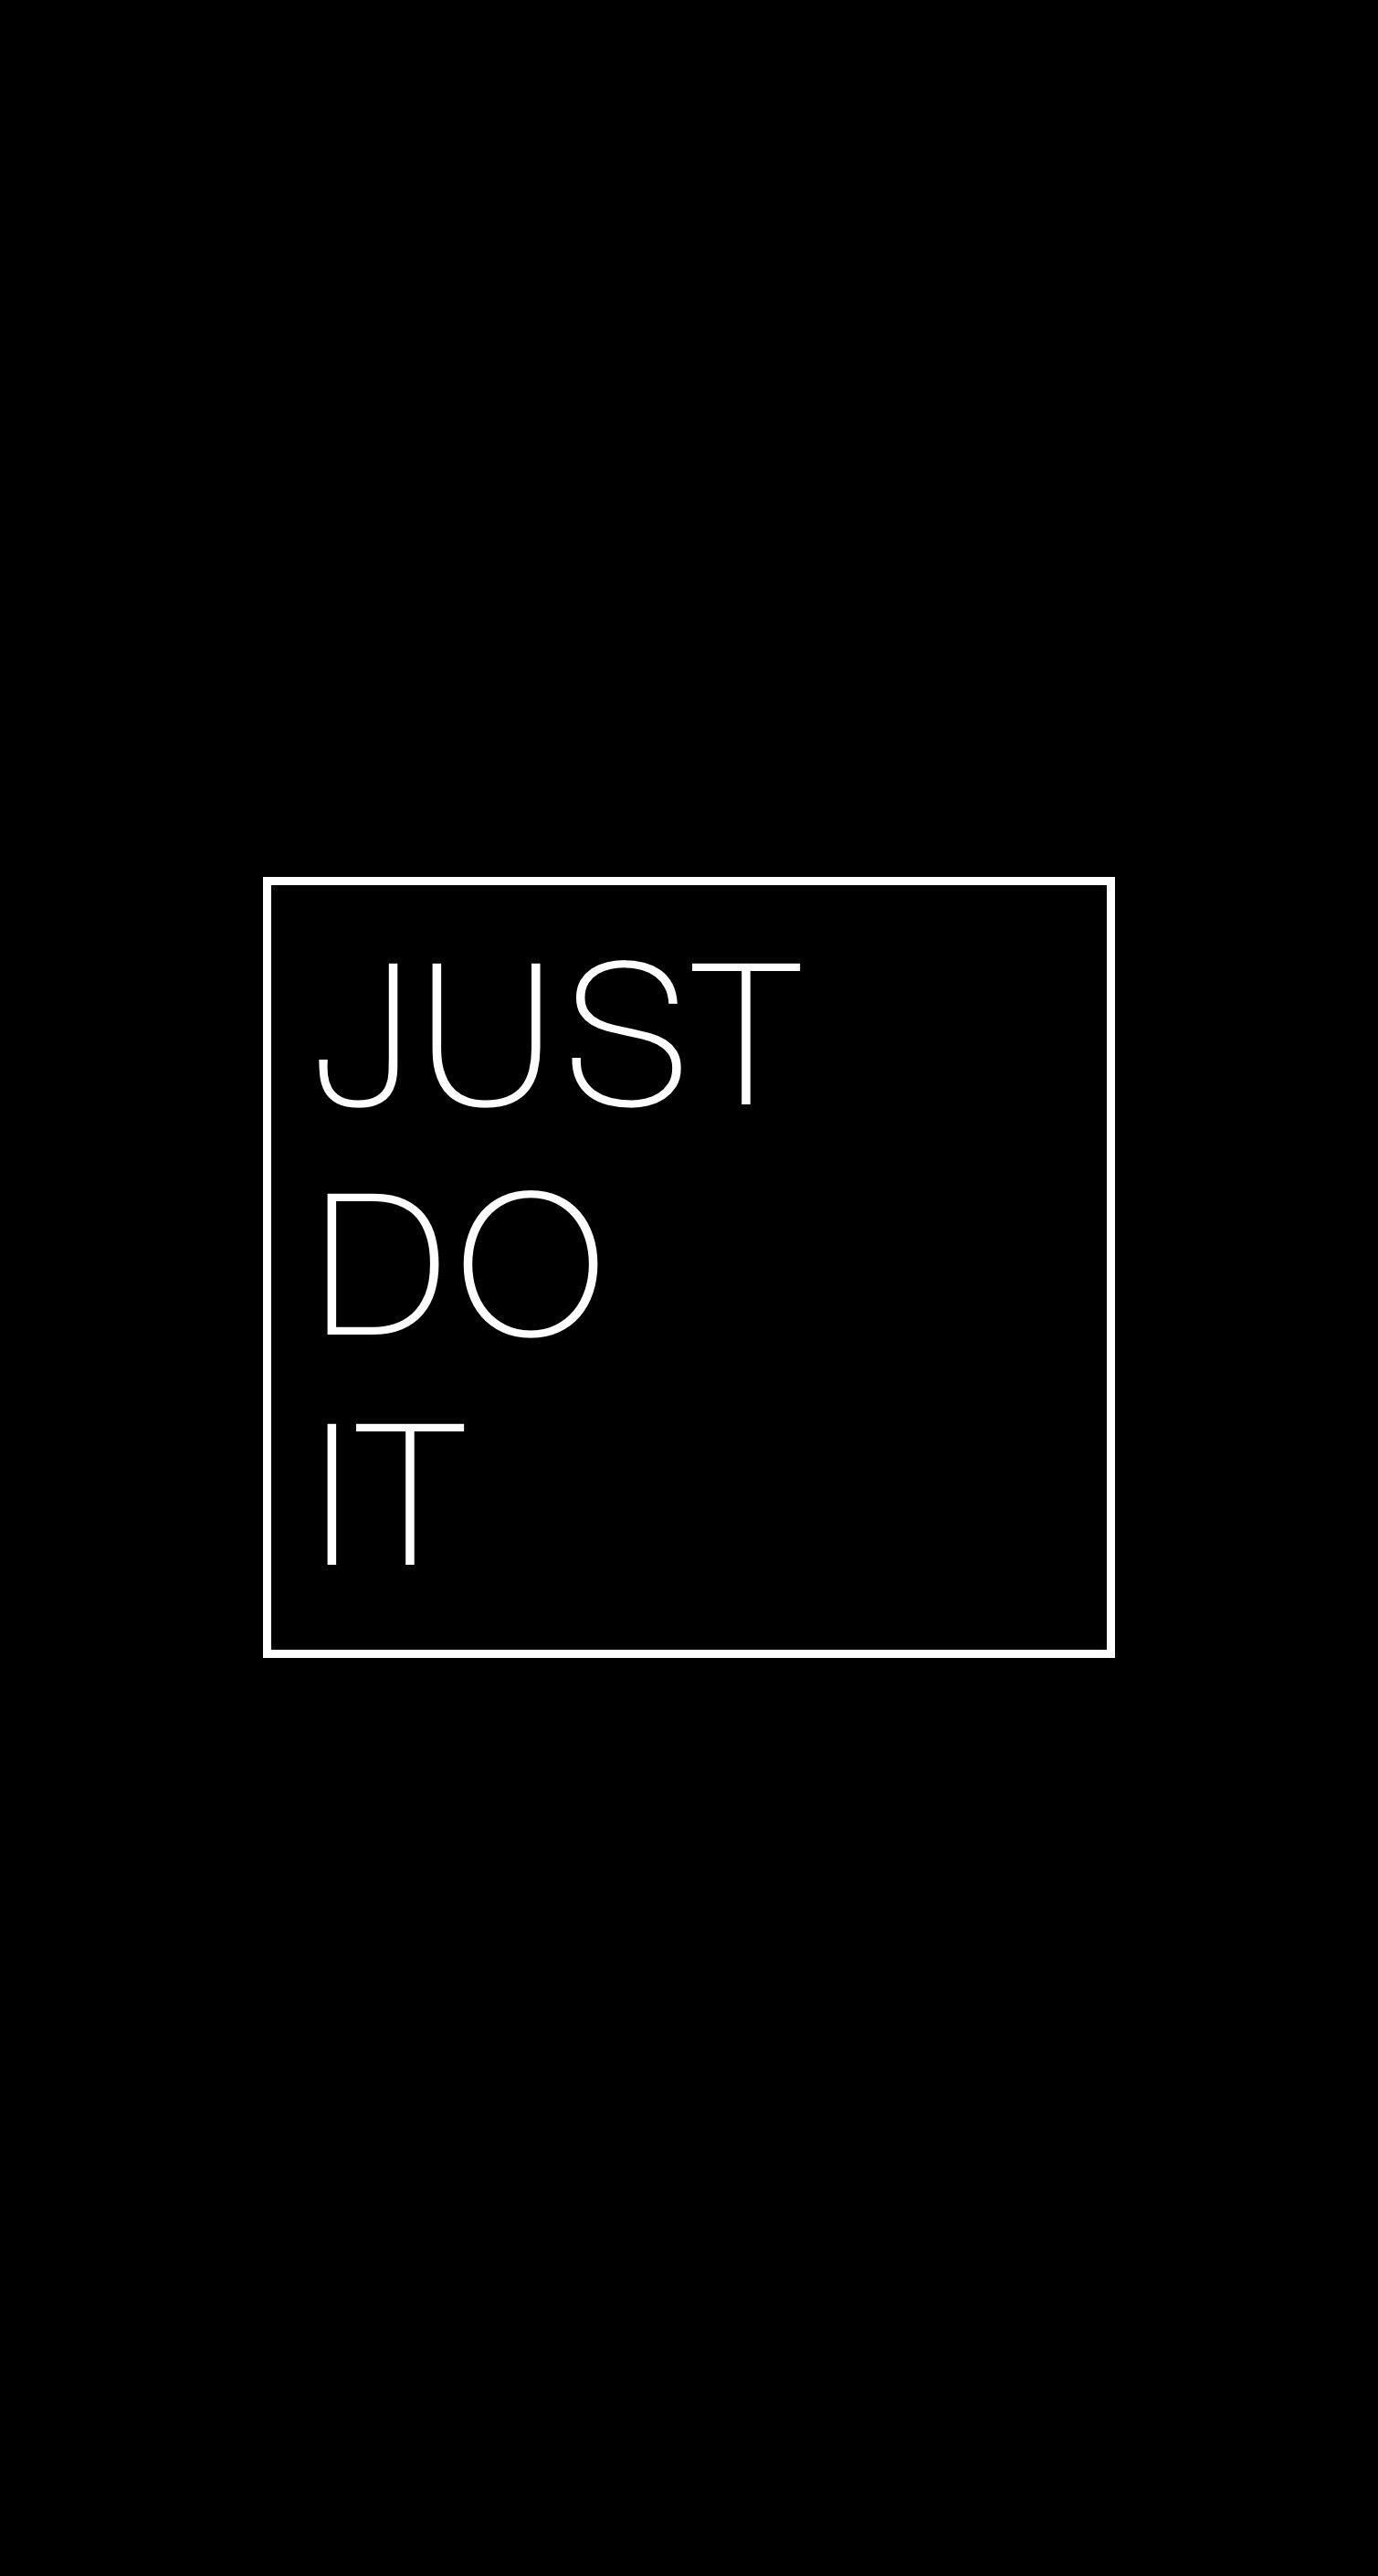 Just Do It Wallpaper for iPhone